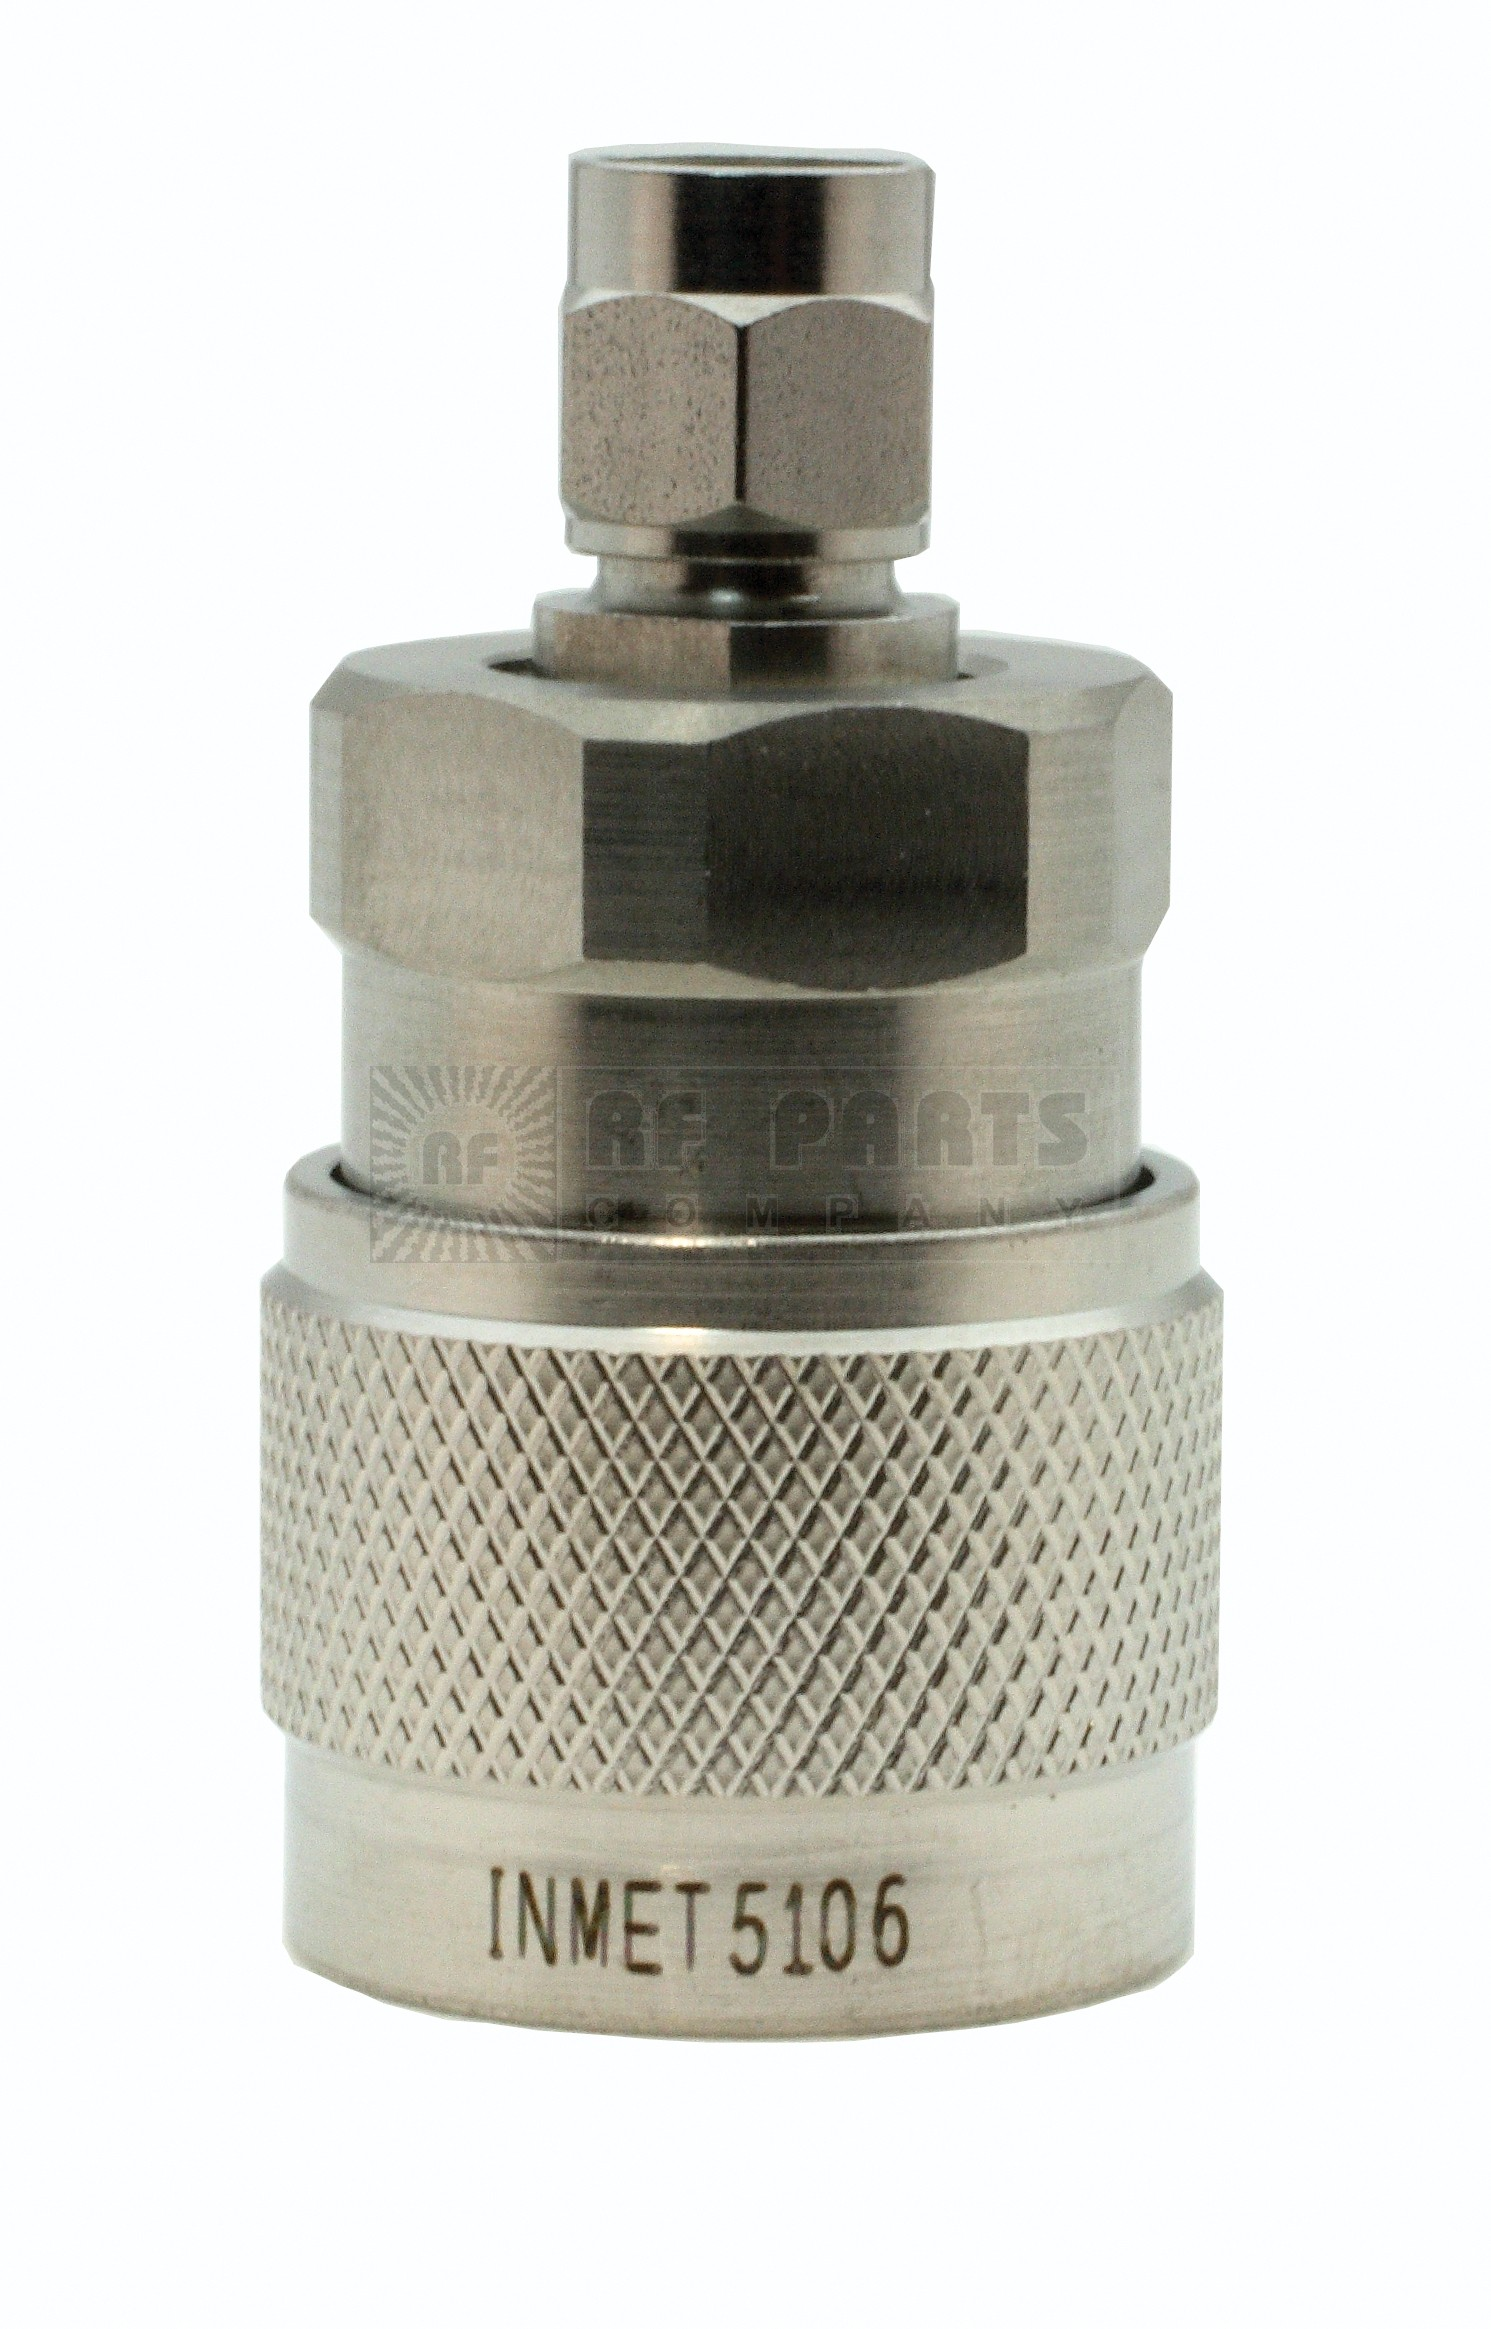 5106 Adapter, sma(male)--type-n(male), 0-18 ghz, precision 1.12:1, AERO